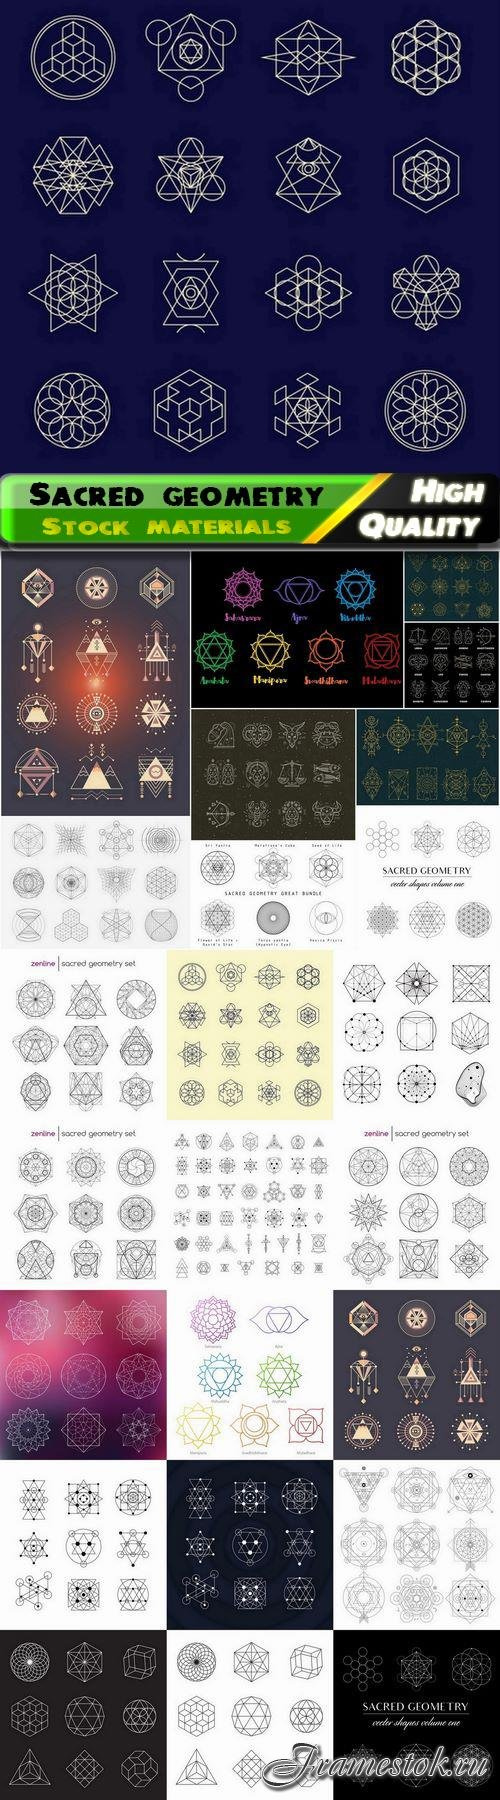 Sacred geometry shape and religion figures sign and symbol 2 25 Eps